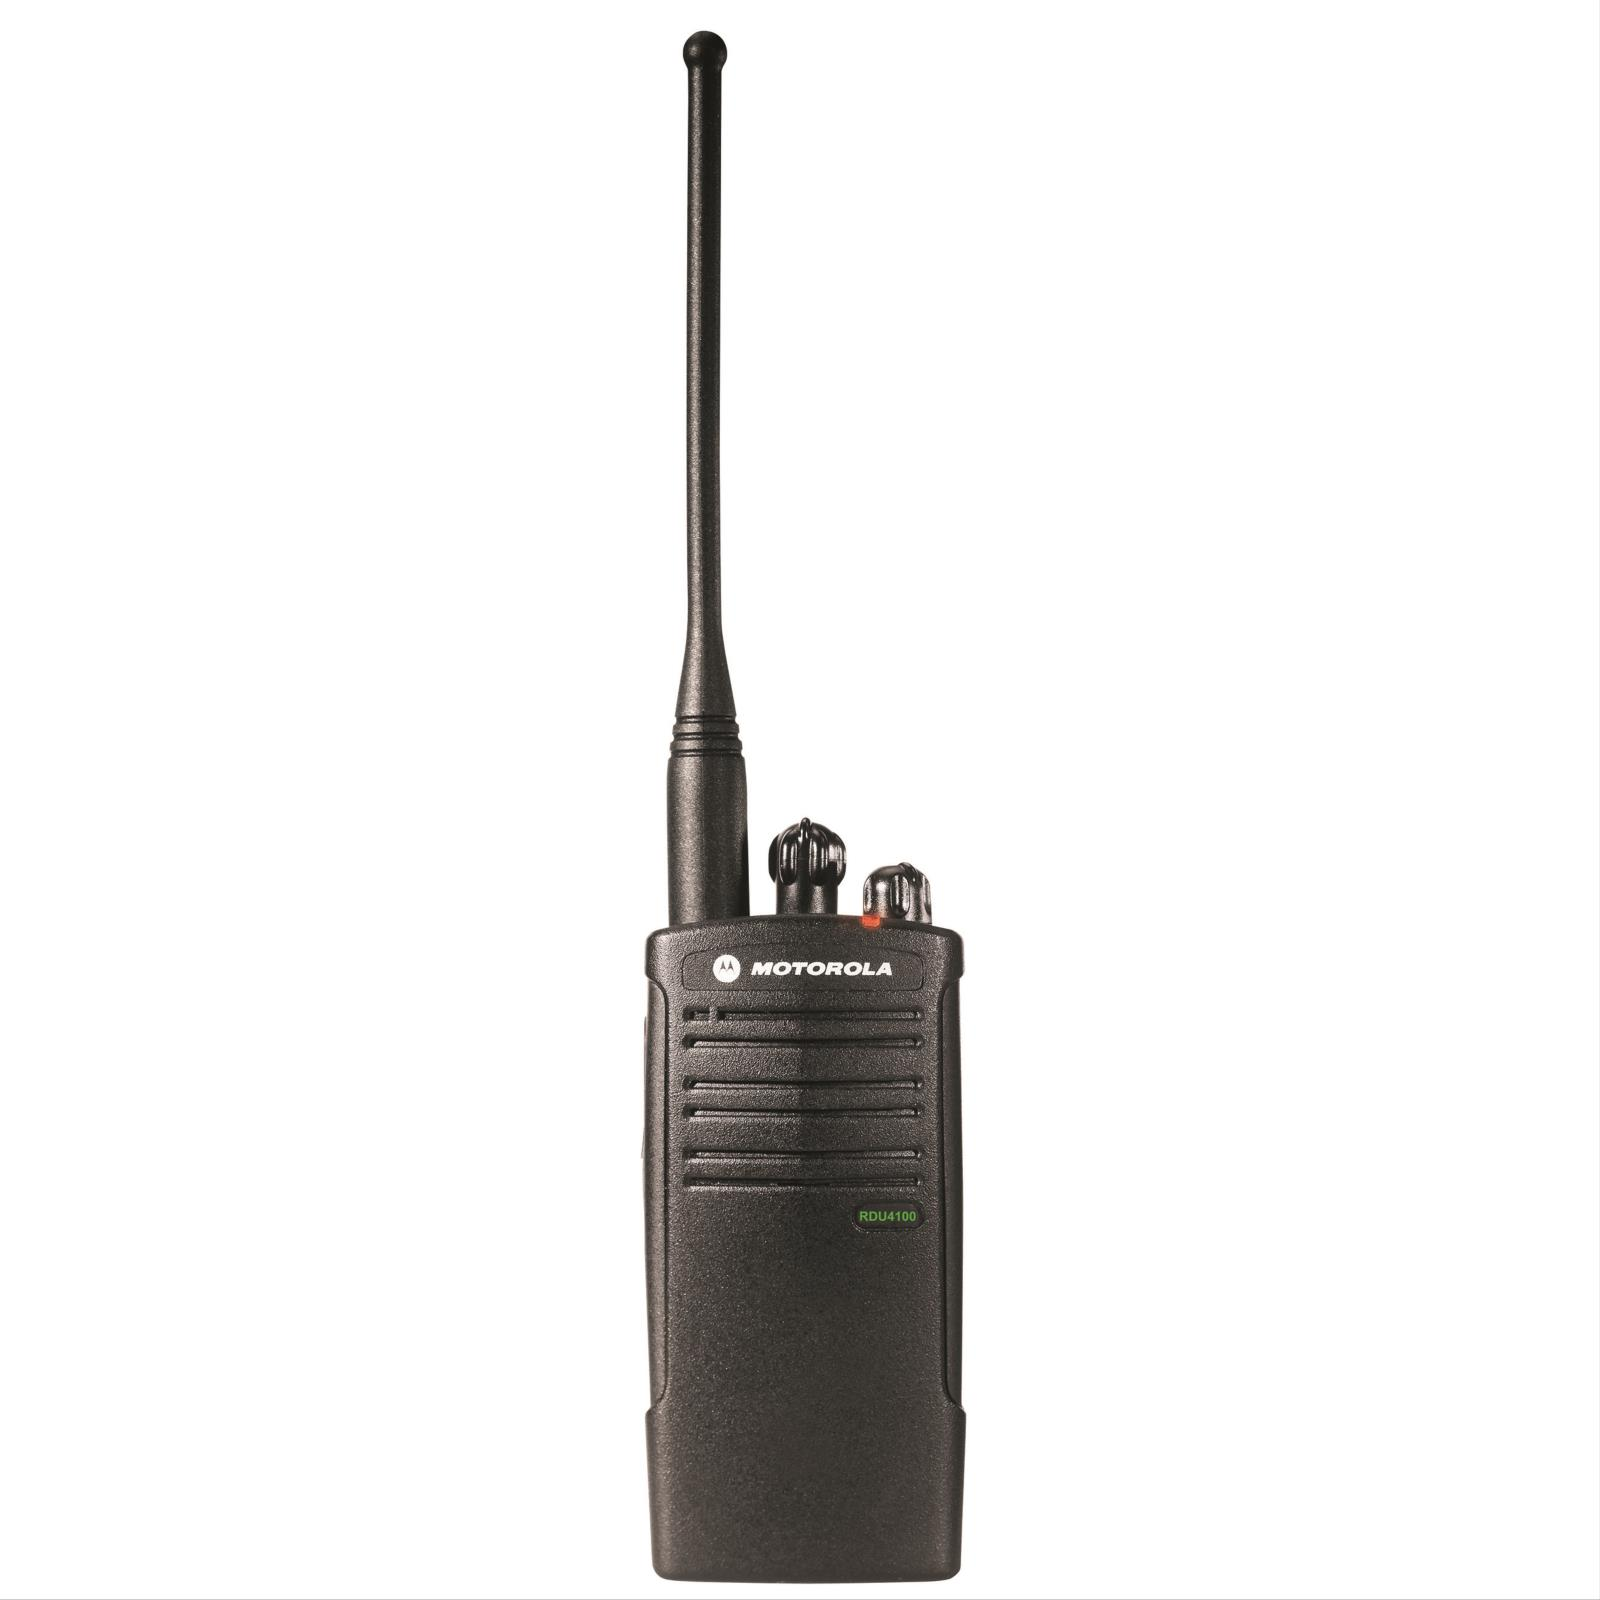 Motorola UHF Heavy Duty Radio